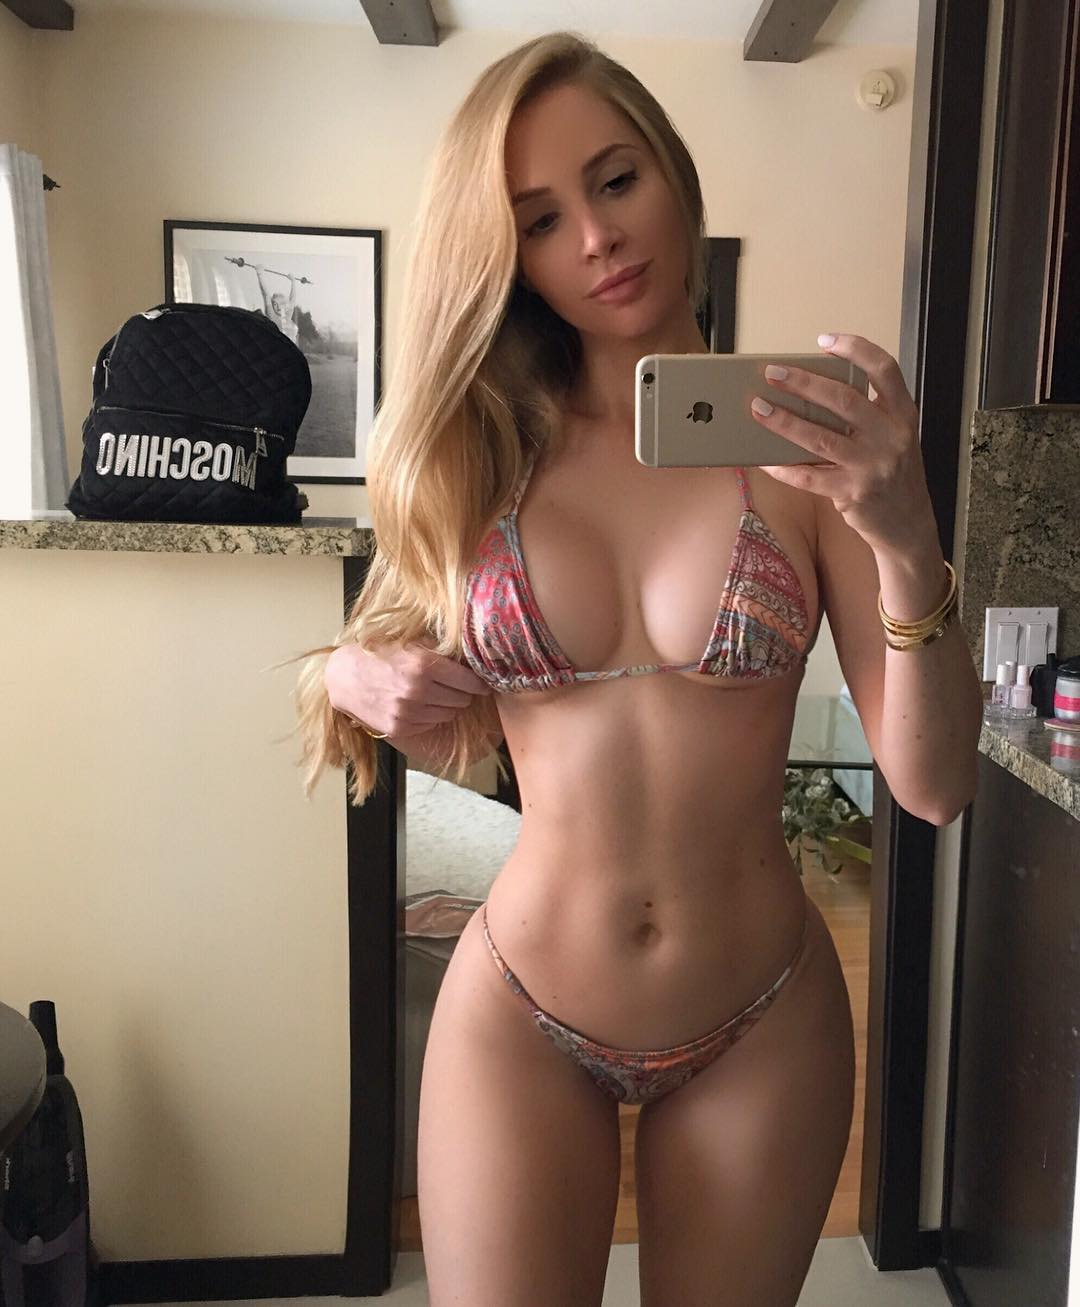 Have thought girls bodies porn real agree